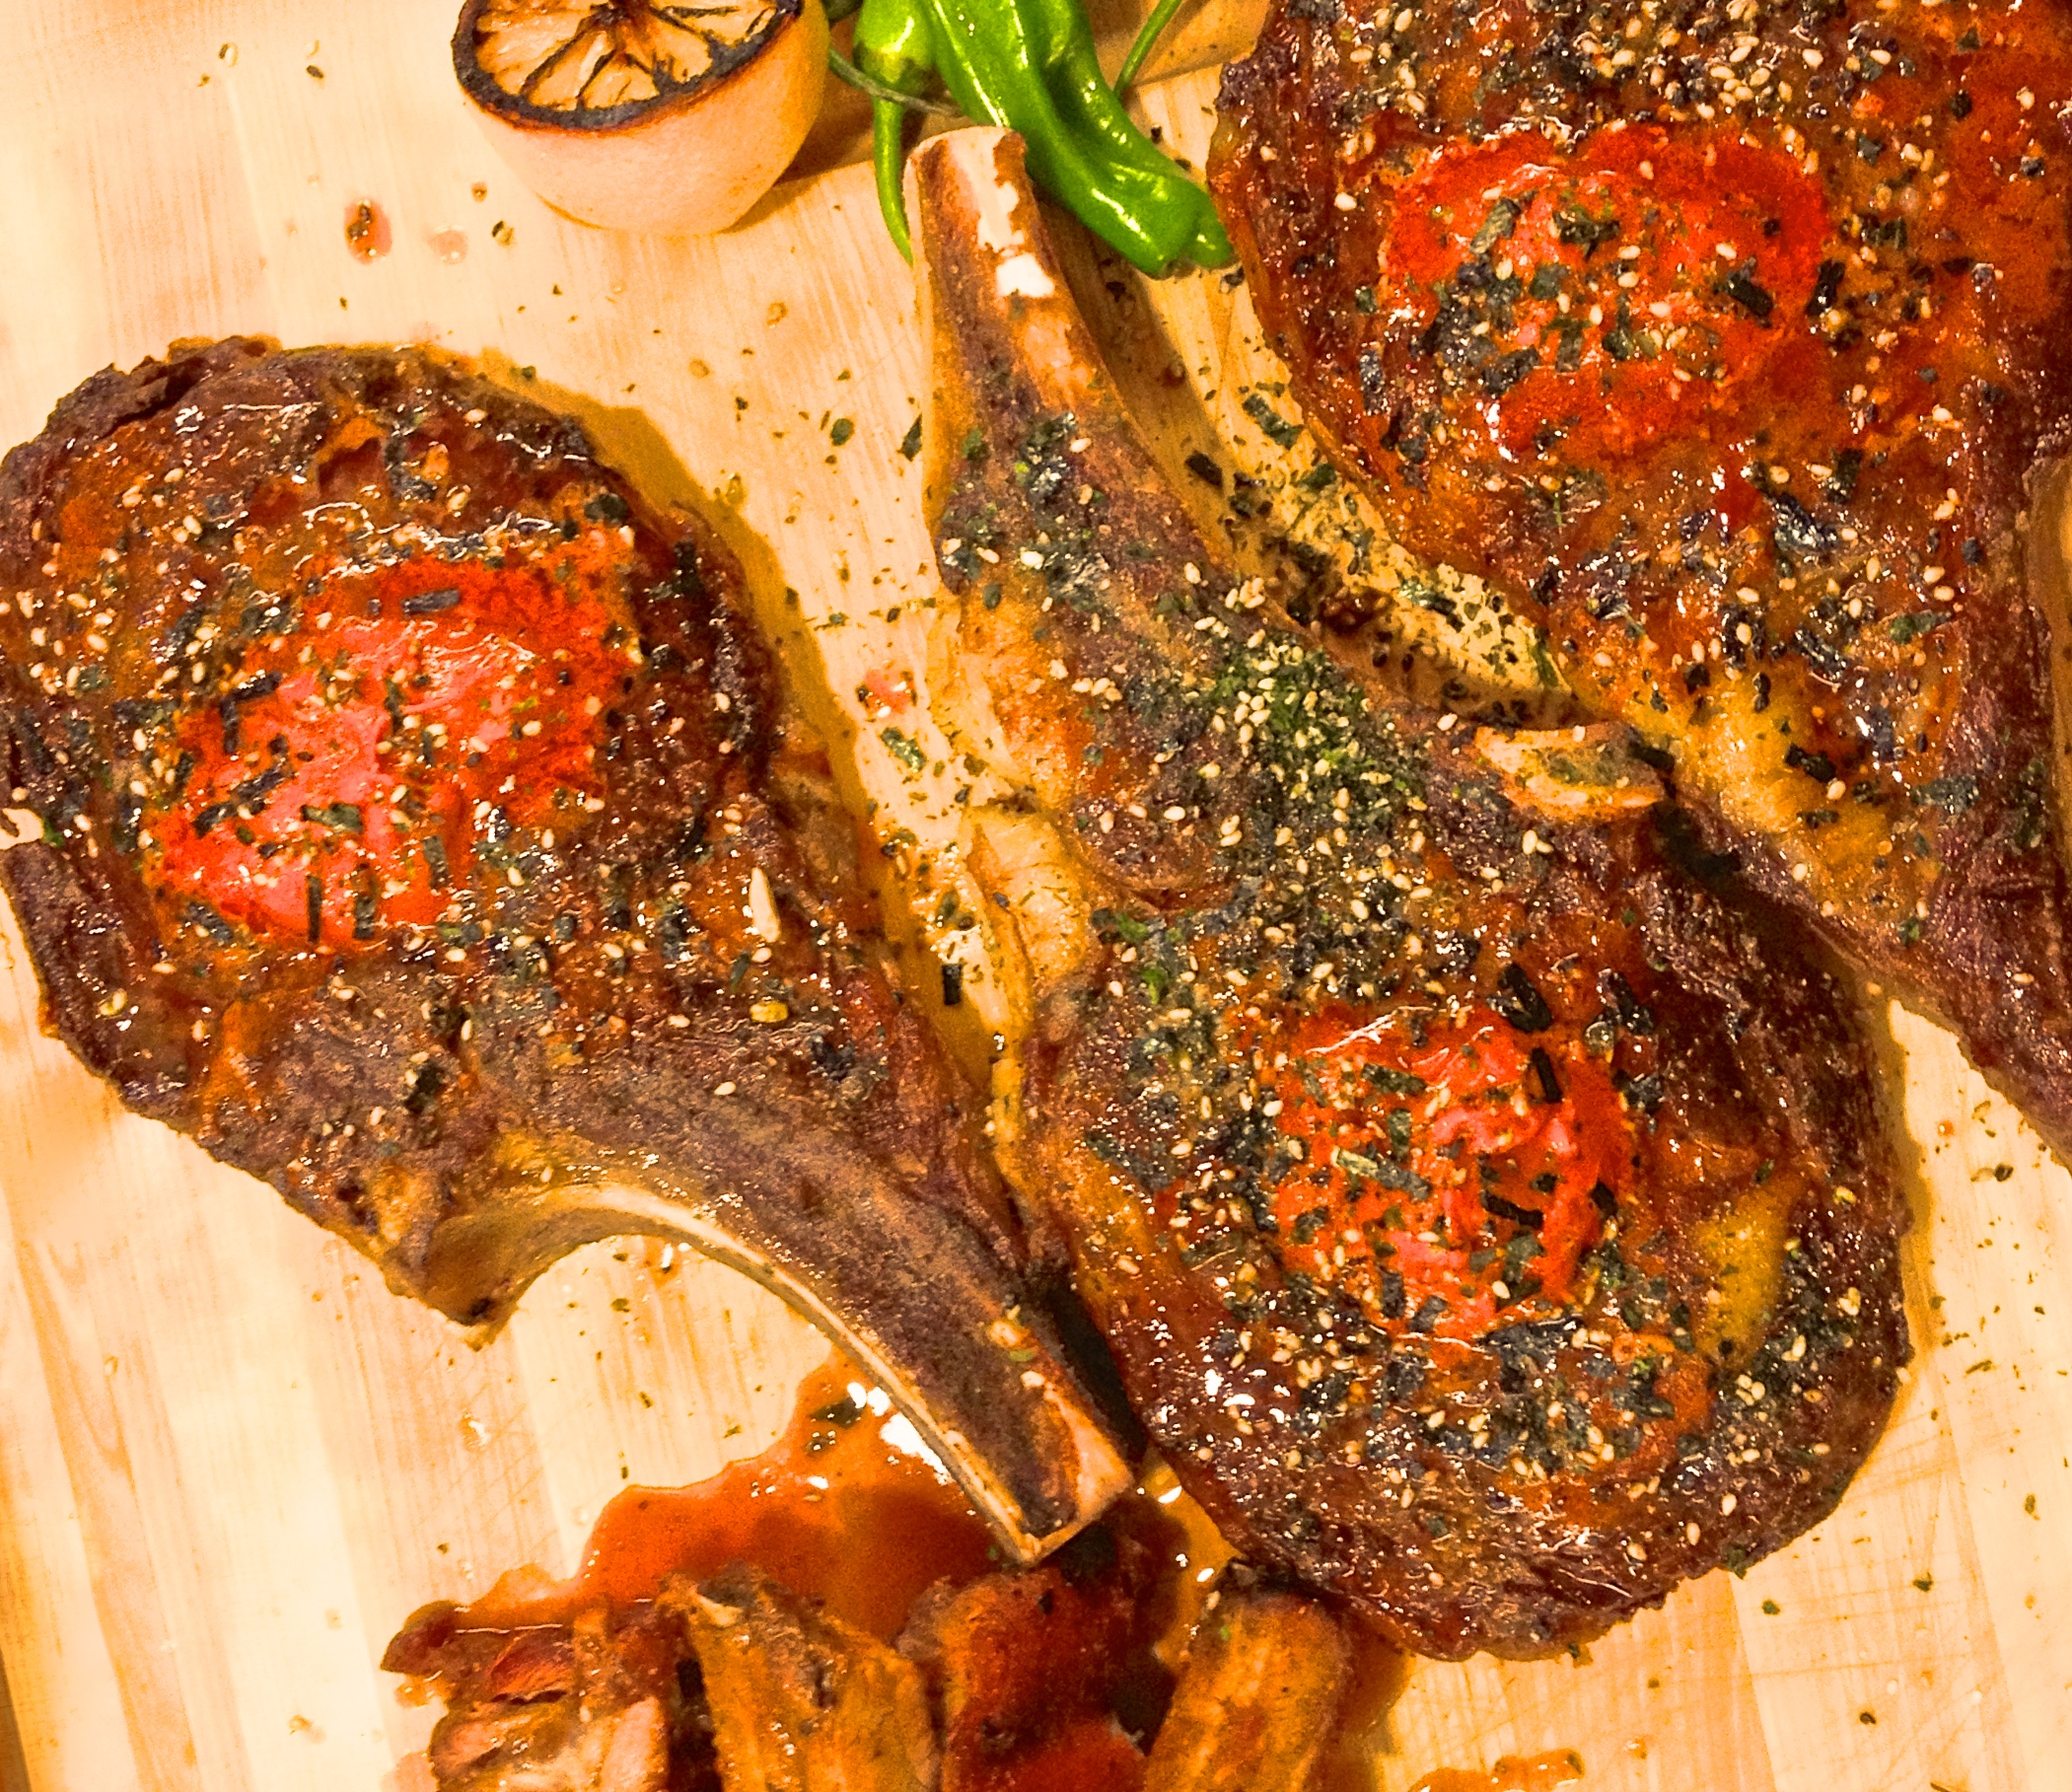 Ribeye Steaks with Gochujang Butter and Nori